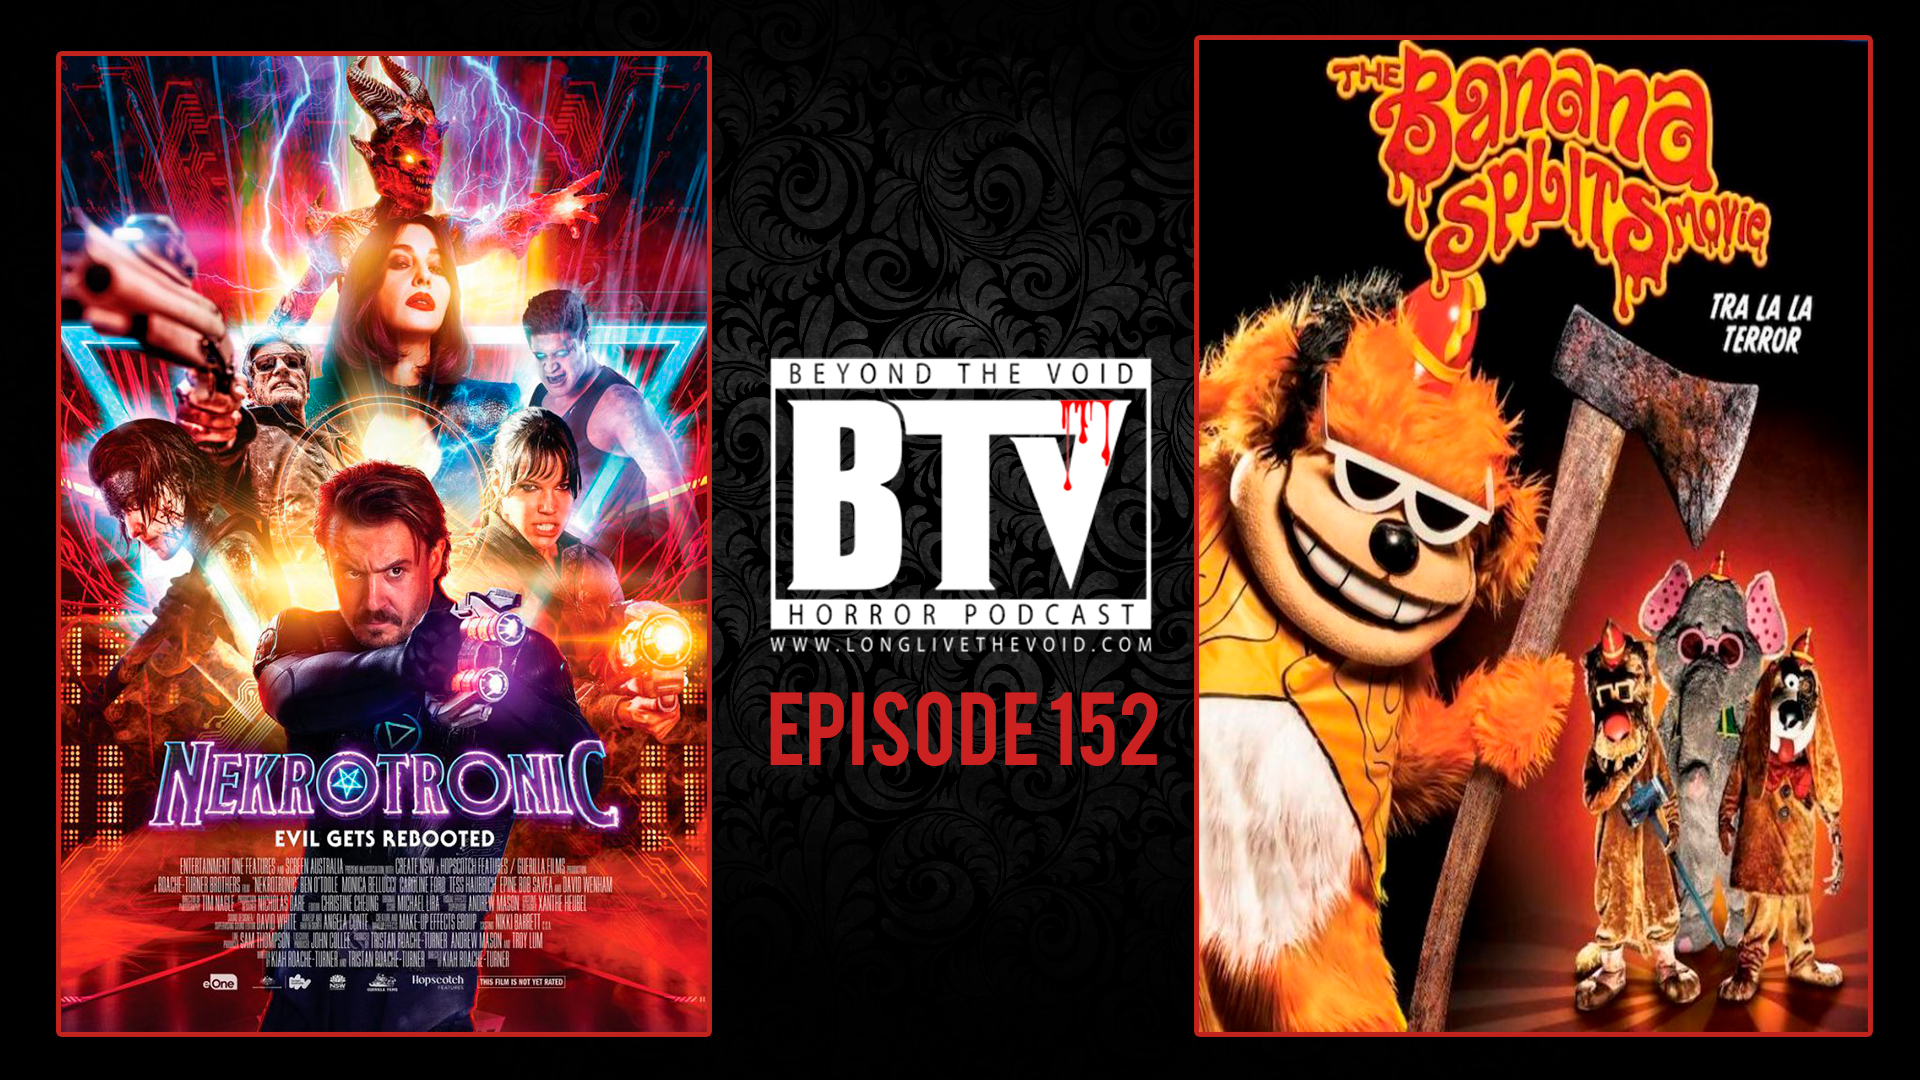 YT-Ep152-Nekrotronic-2018-&-The-Banana-Splits-Movie-2019.jpg